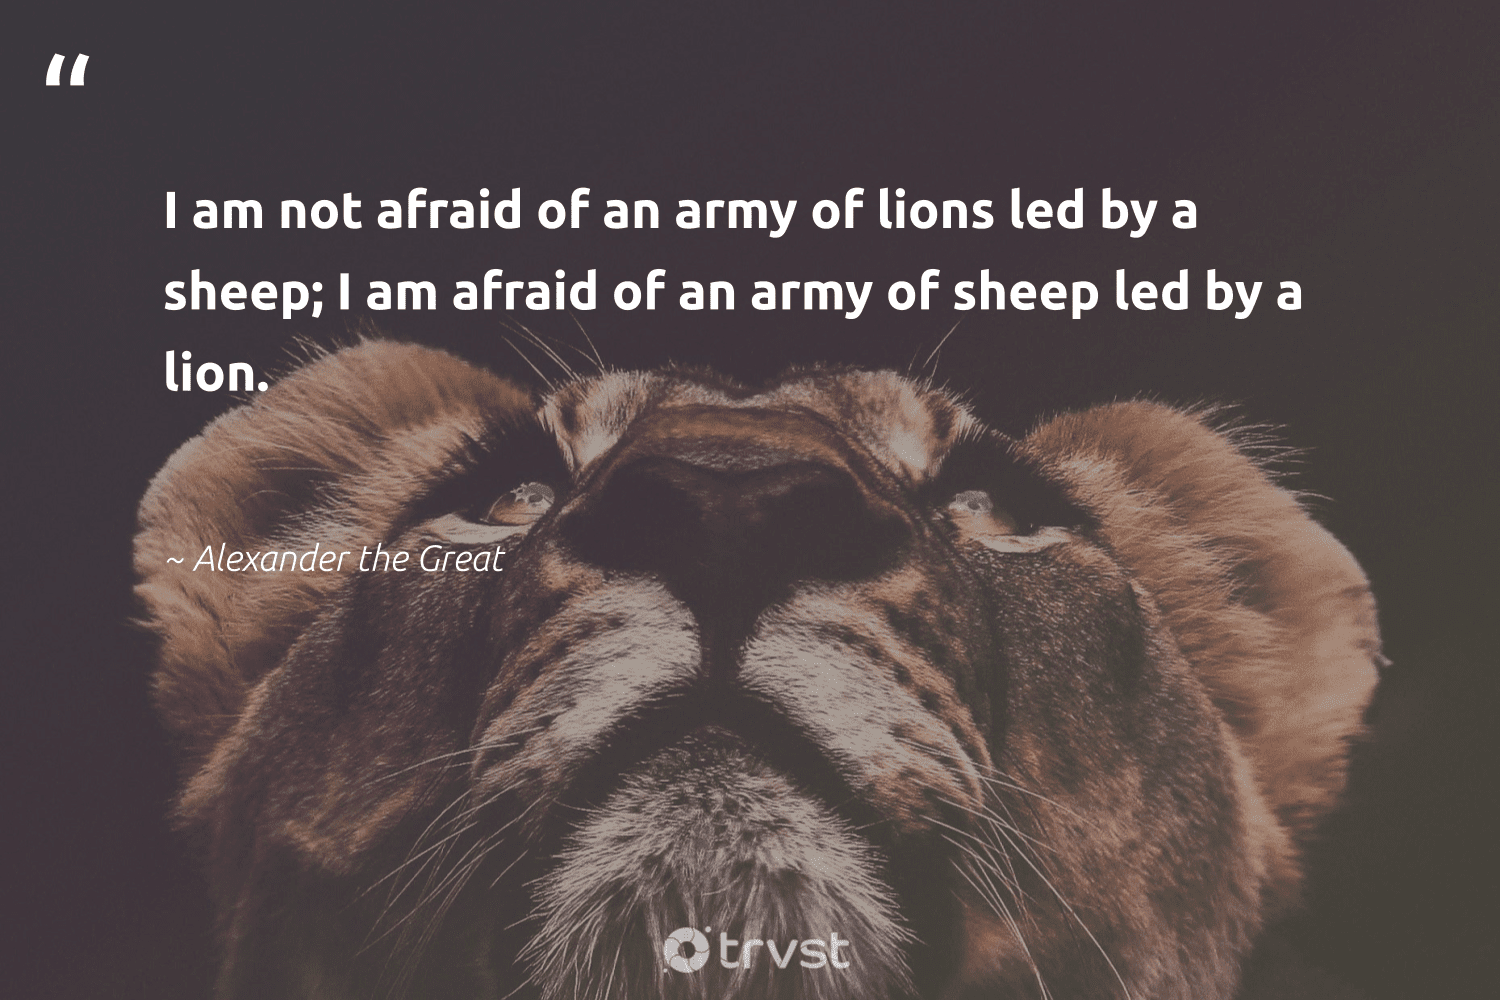 """""""I am not afraid of an army of lions led by a sheep; I am afraid of an army of sheep led by a lion.""""  - Alexander the Great #trvst #quotes #lion #lions #big5 #planetearthfirst #splendidanimals #changetheworld #conservation #dosomething #biodiversity #dotherightthing"""